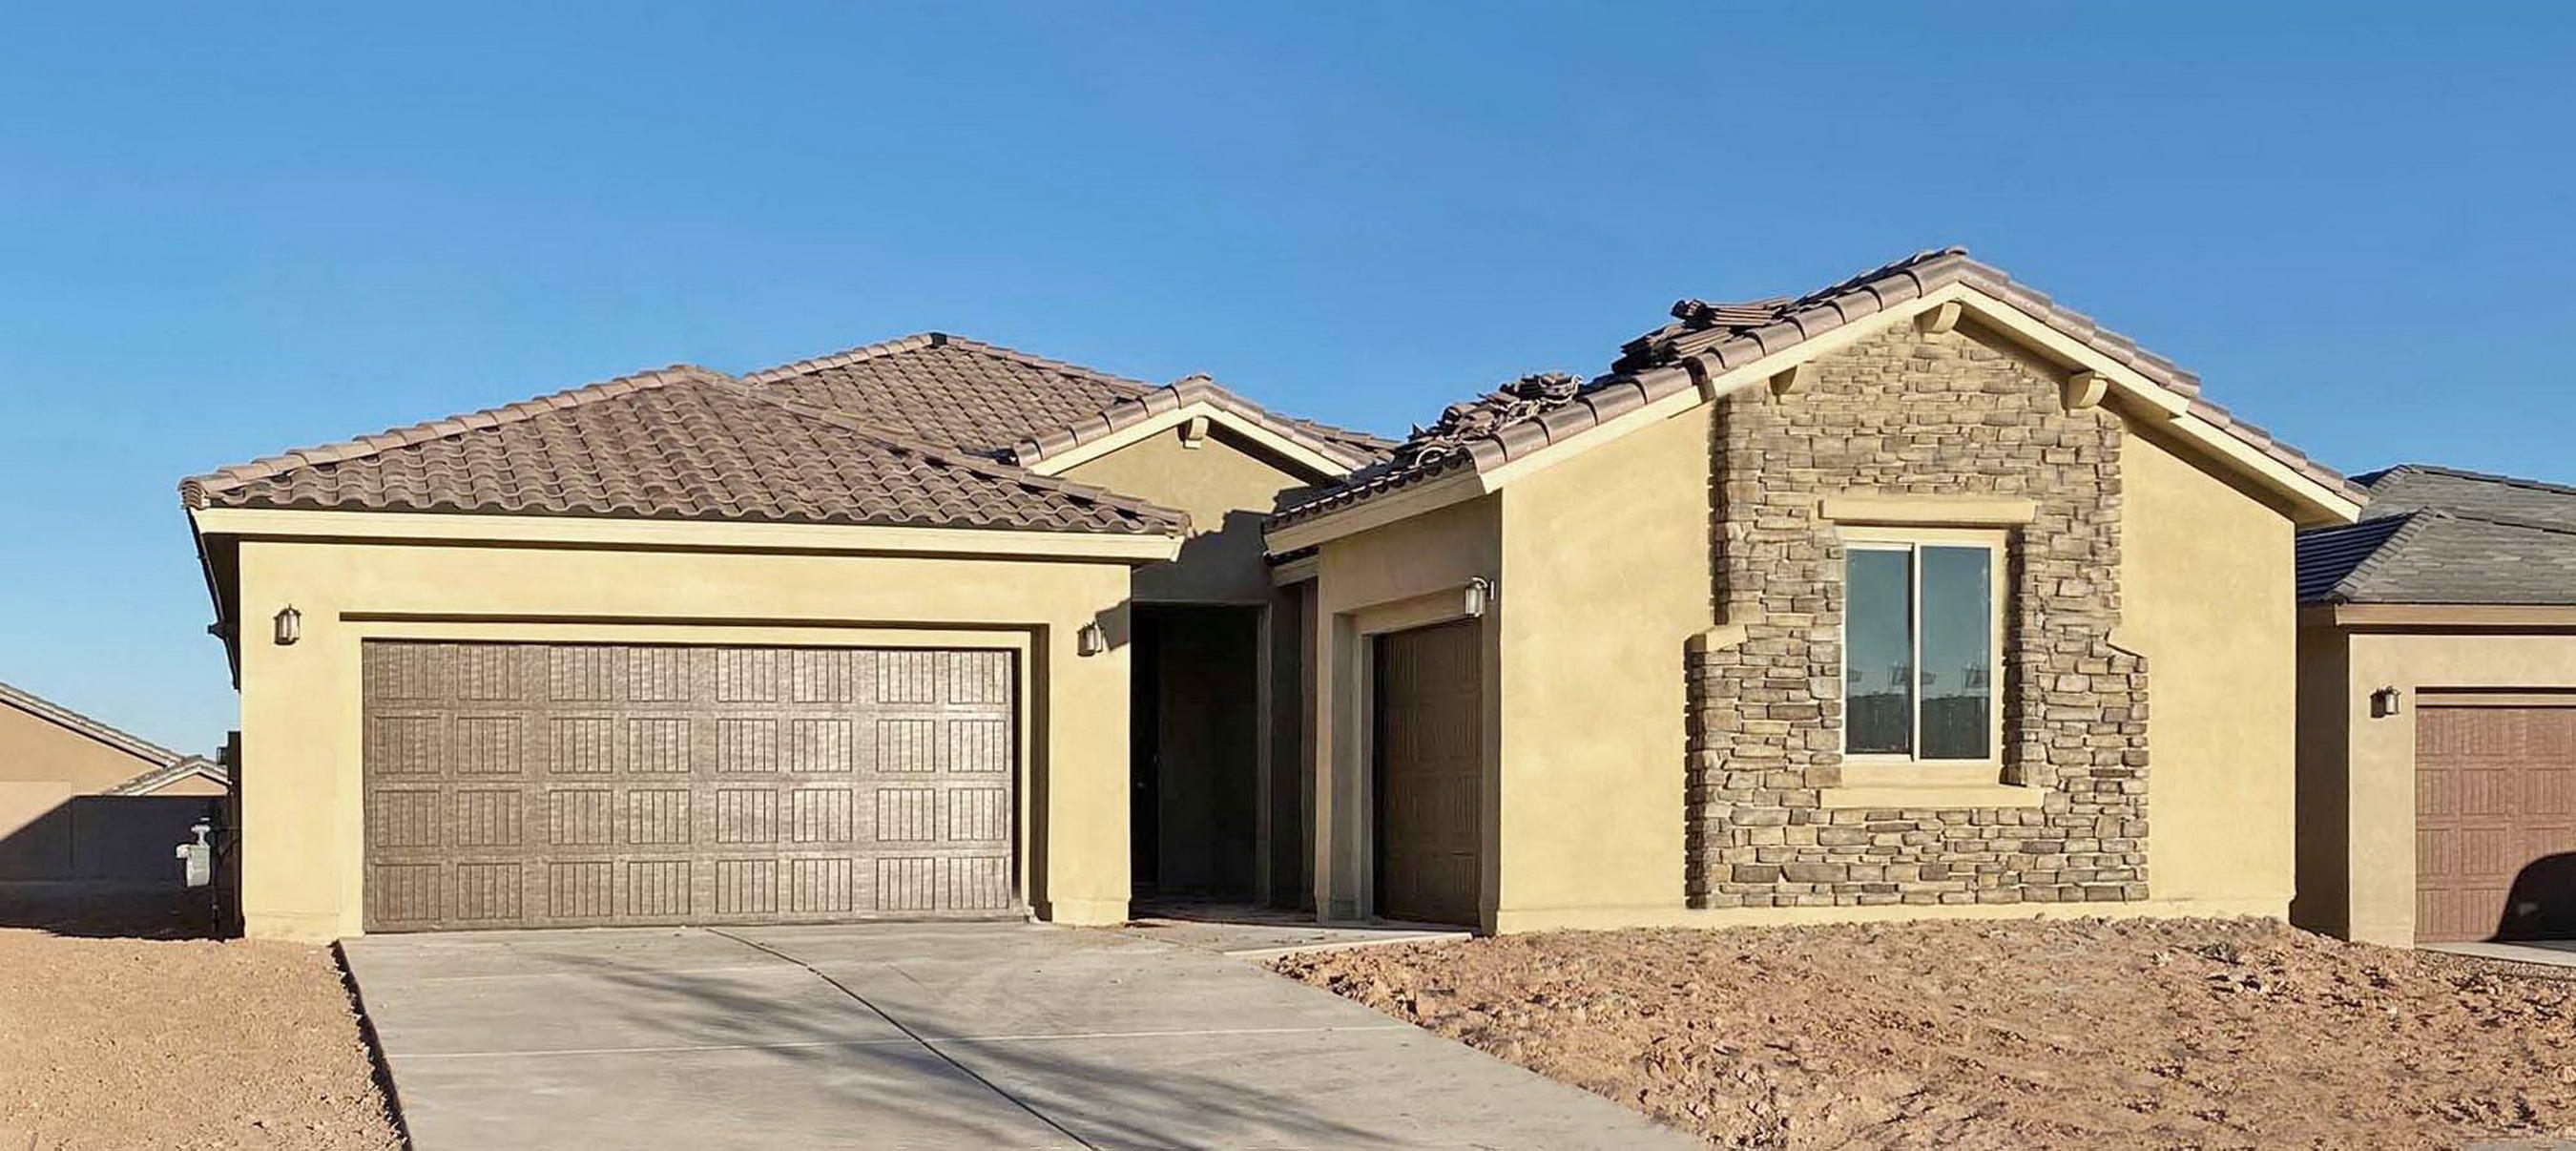 Brand-new, never lived-in Parklane plan by Pulte in our gated community! 3 bedrooms, 3 baths and a large study. The Chef kitchen includes a big granite island, built-in cooktop, pendant vent hood, wall microwave and wall oven, all with luxurious granite counters, high-grade cabinets and decorative tile backsplash. Open floor plan with bright, delightful gathering room, fireplace and elegant tile flooring in all but the bedrooms/study. Upgraded Owner's Bath with snail framed walk-in-shower. Green-Build Certified for exceptional energy efficiency and comfort, Lennox furnace, Refrigerated Air and a tankless hot water heater for extra savings! The Amenity Center right next door has both indoor and outdoor pool, a large gym, a yoga room, a cafe area and massive park. Must see today!